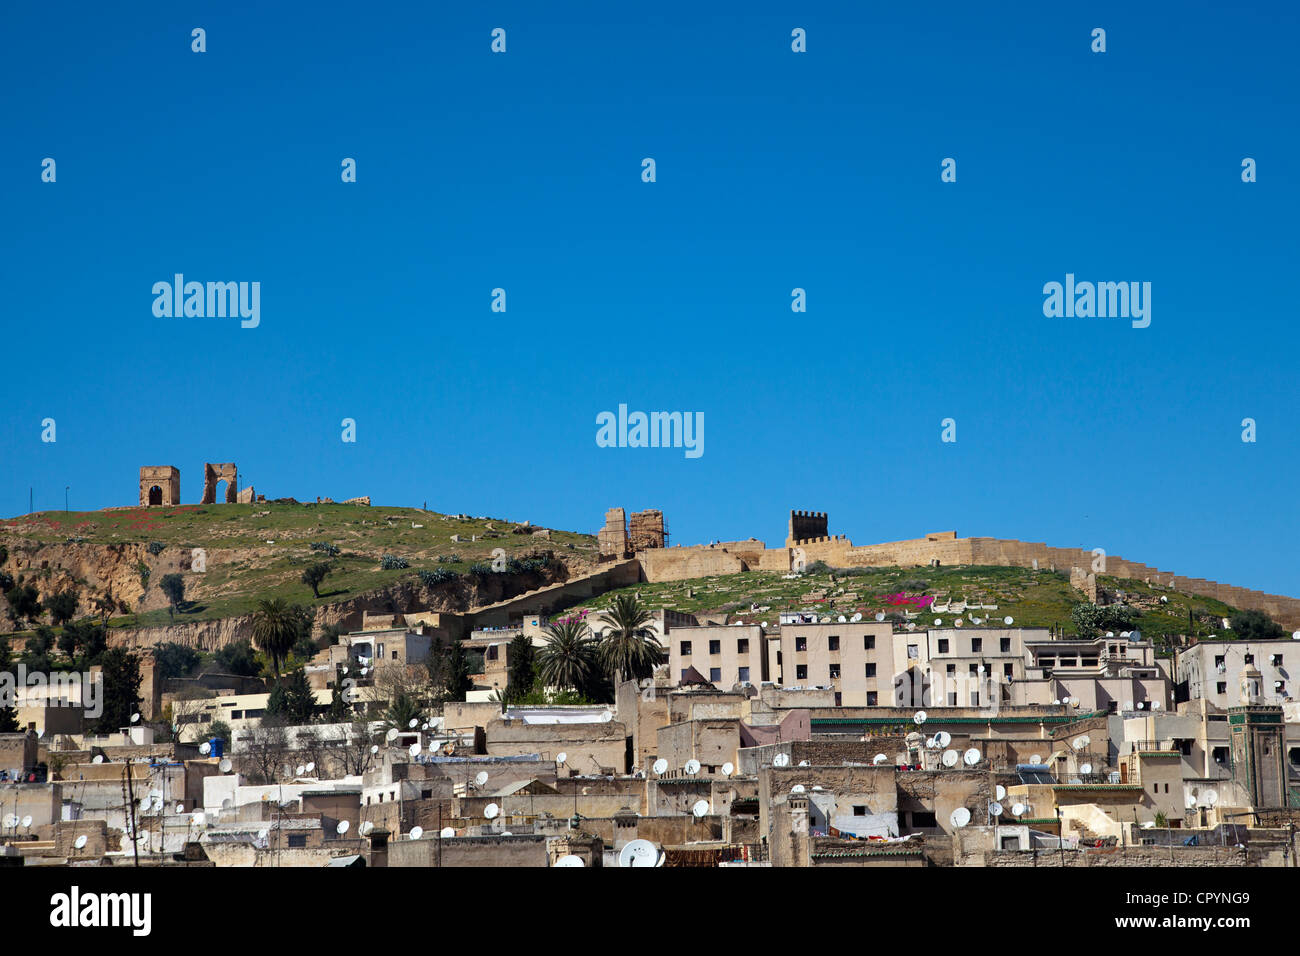 Panorama of the city of Fes or Fez in Morocco, Africa - Stock Image